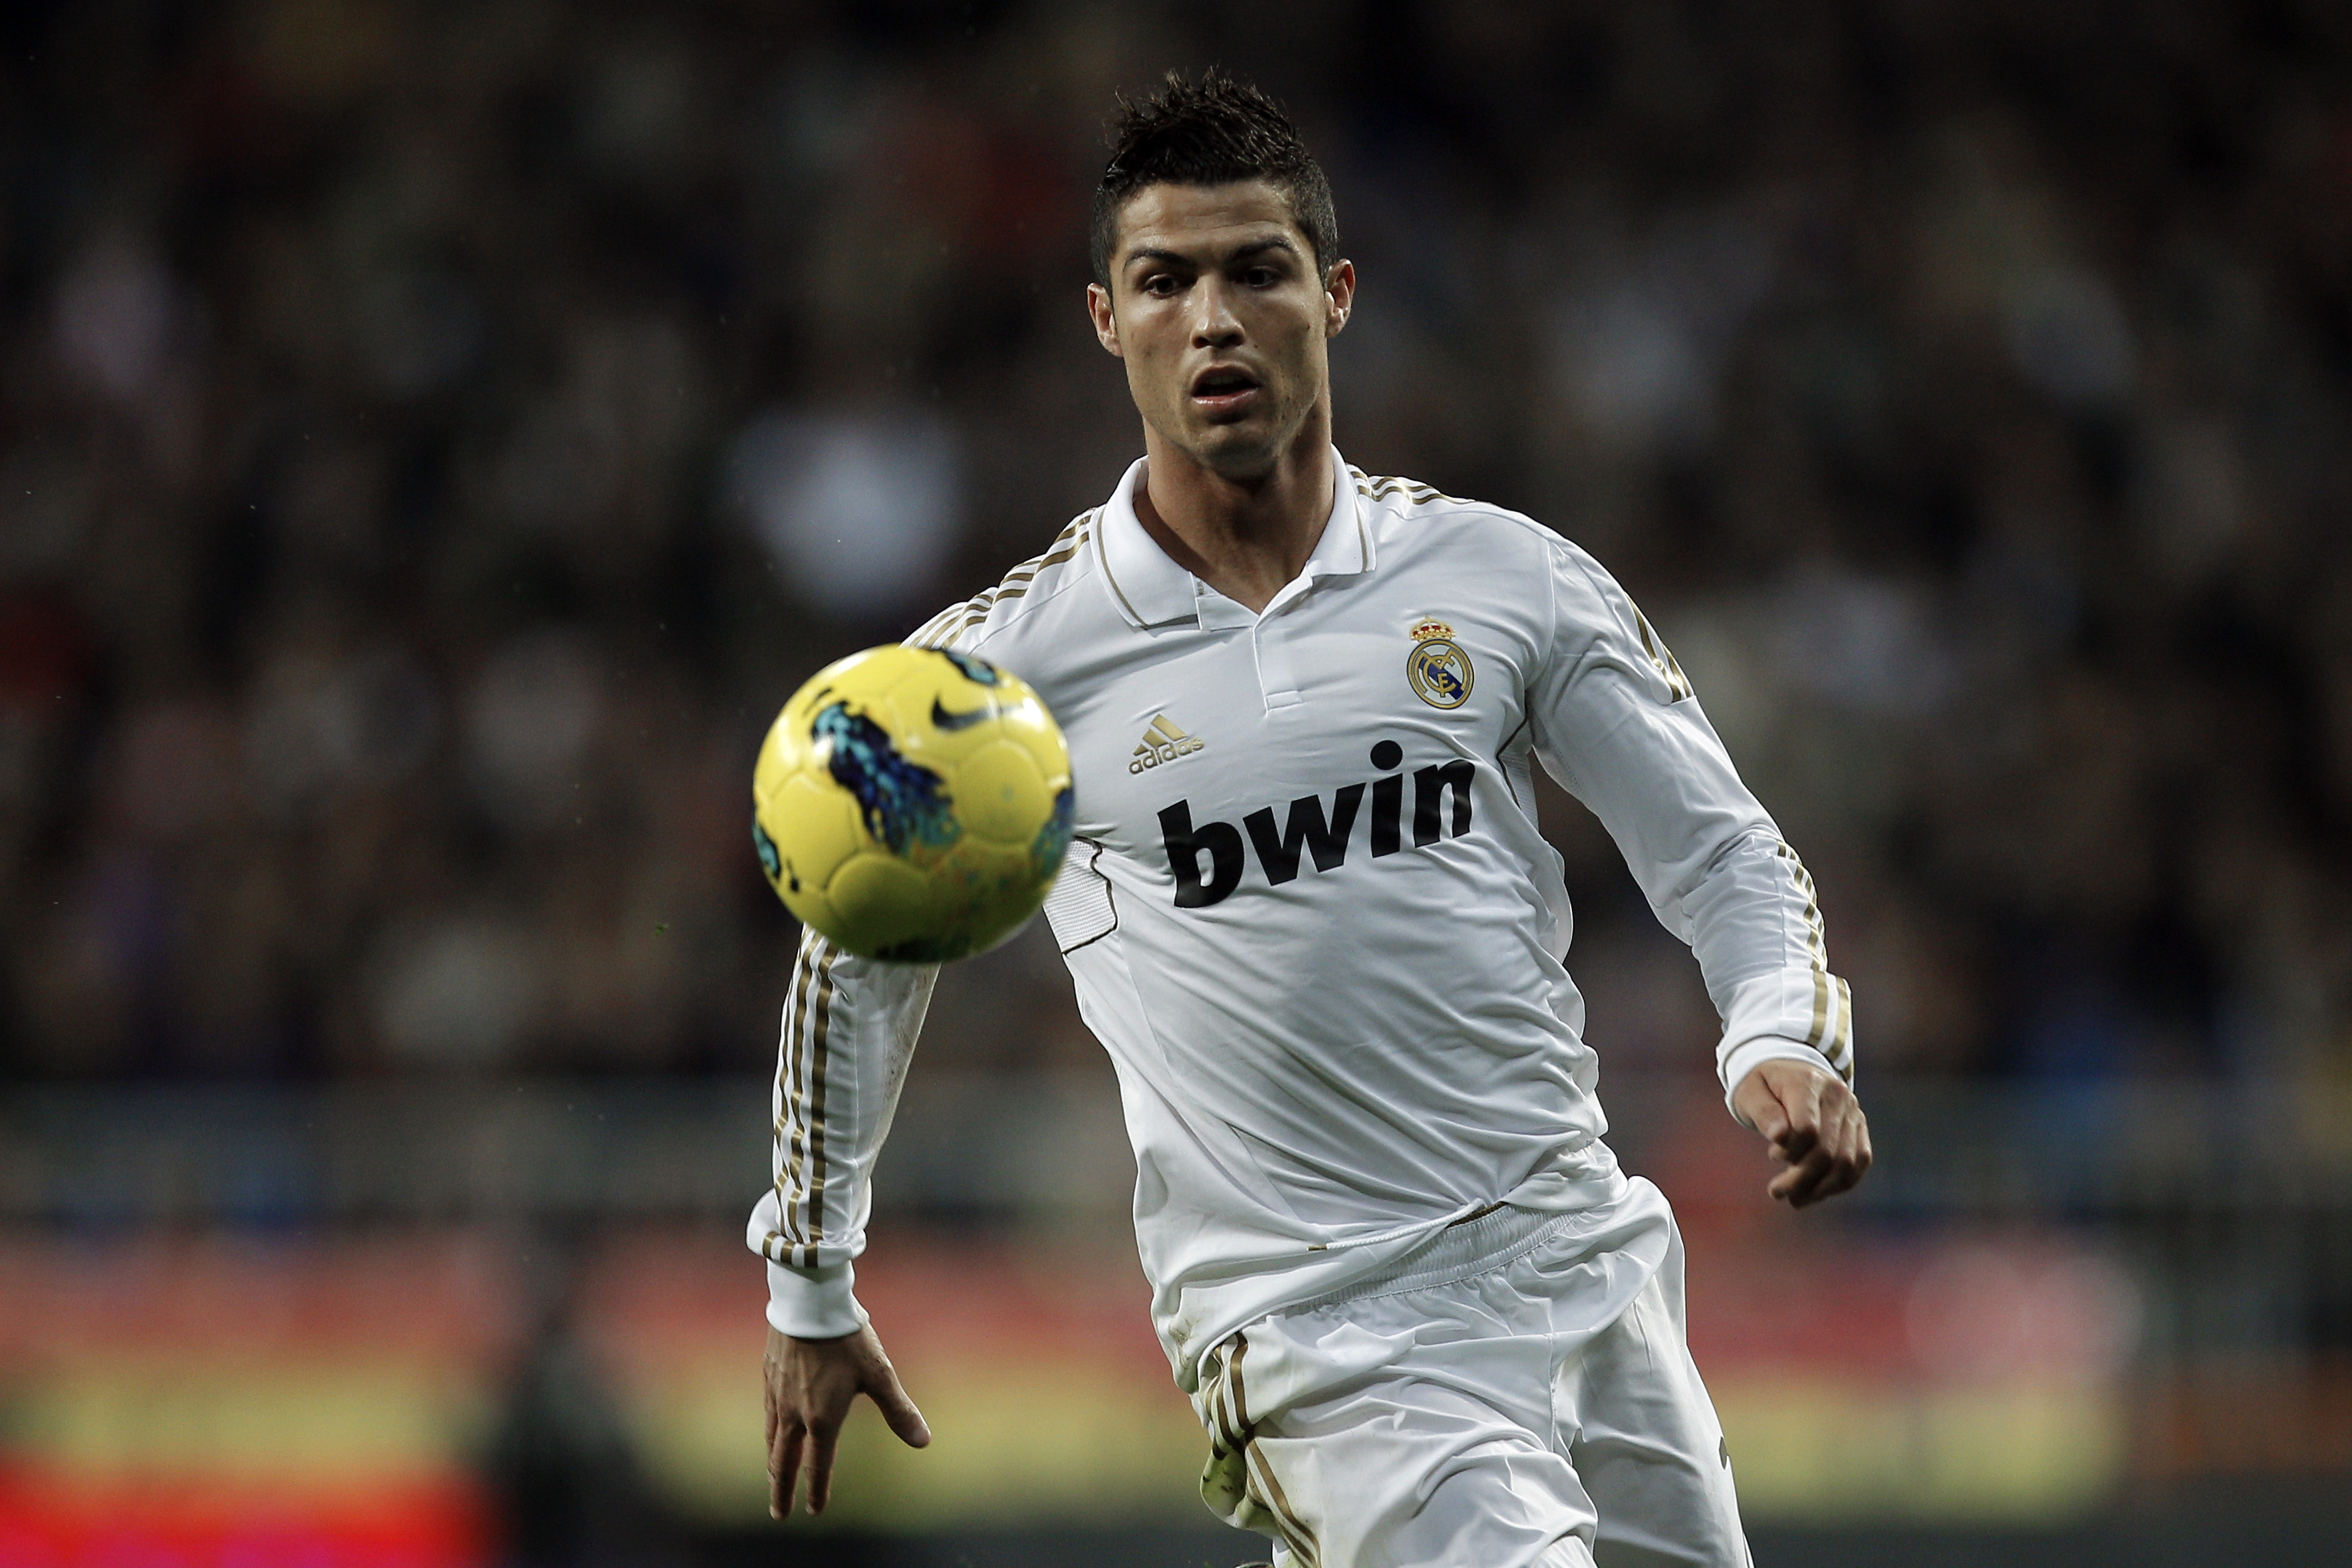 Cristiano Ronaldo Wallpapers Pictures Images